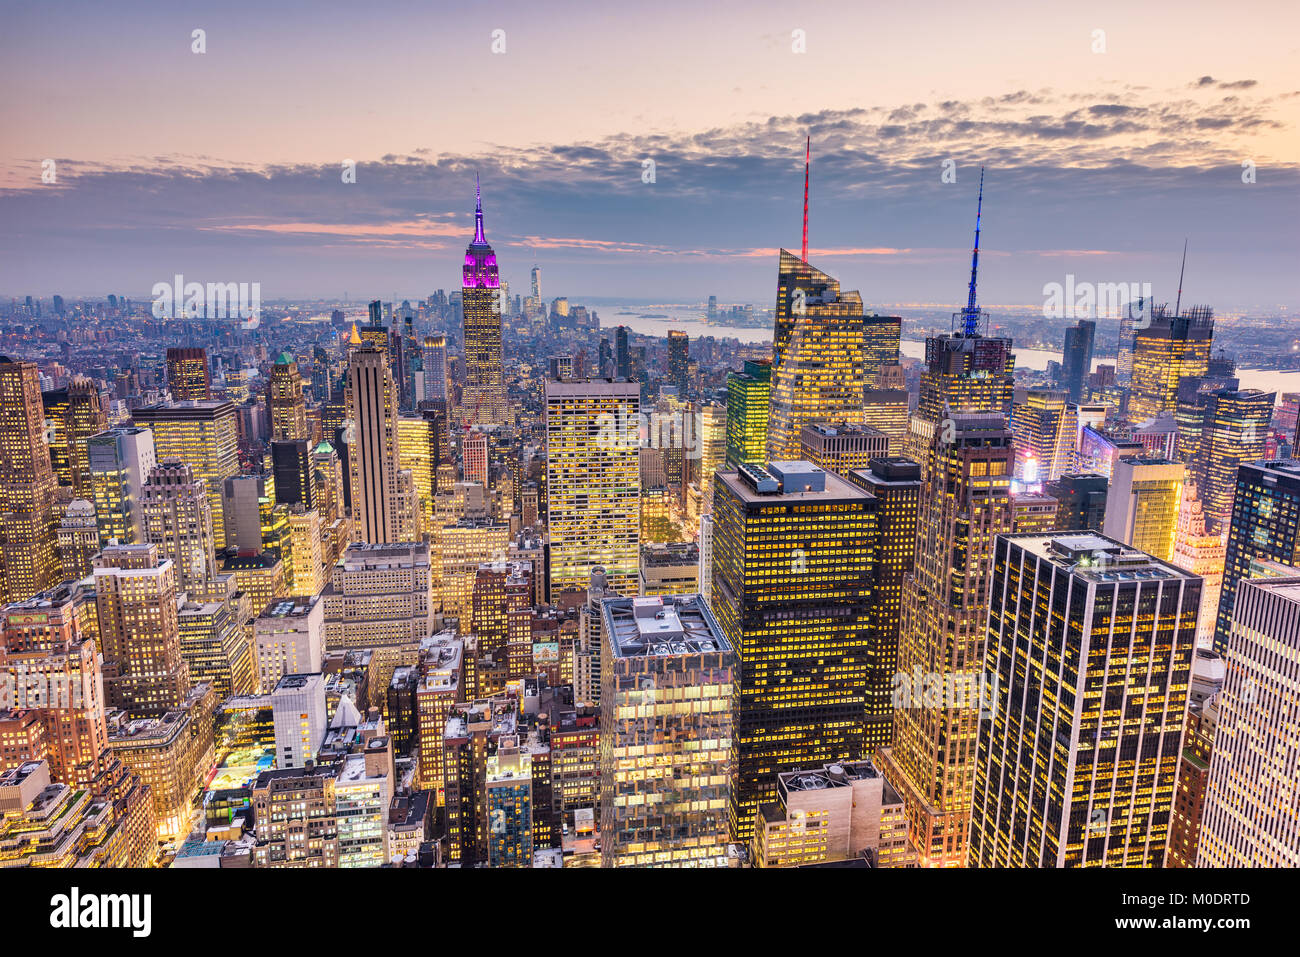 New York City, USA midtown Manhattan financial district cityscape at dusk. - Stock Image